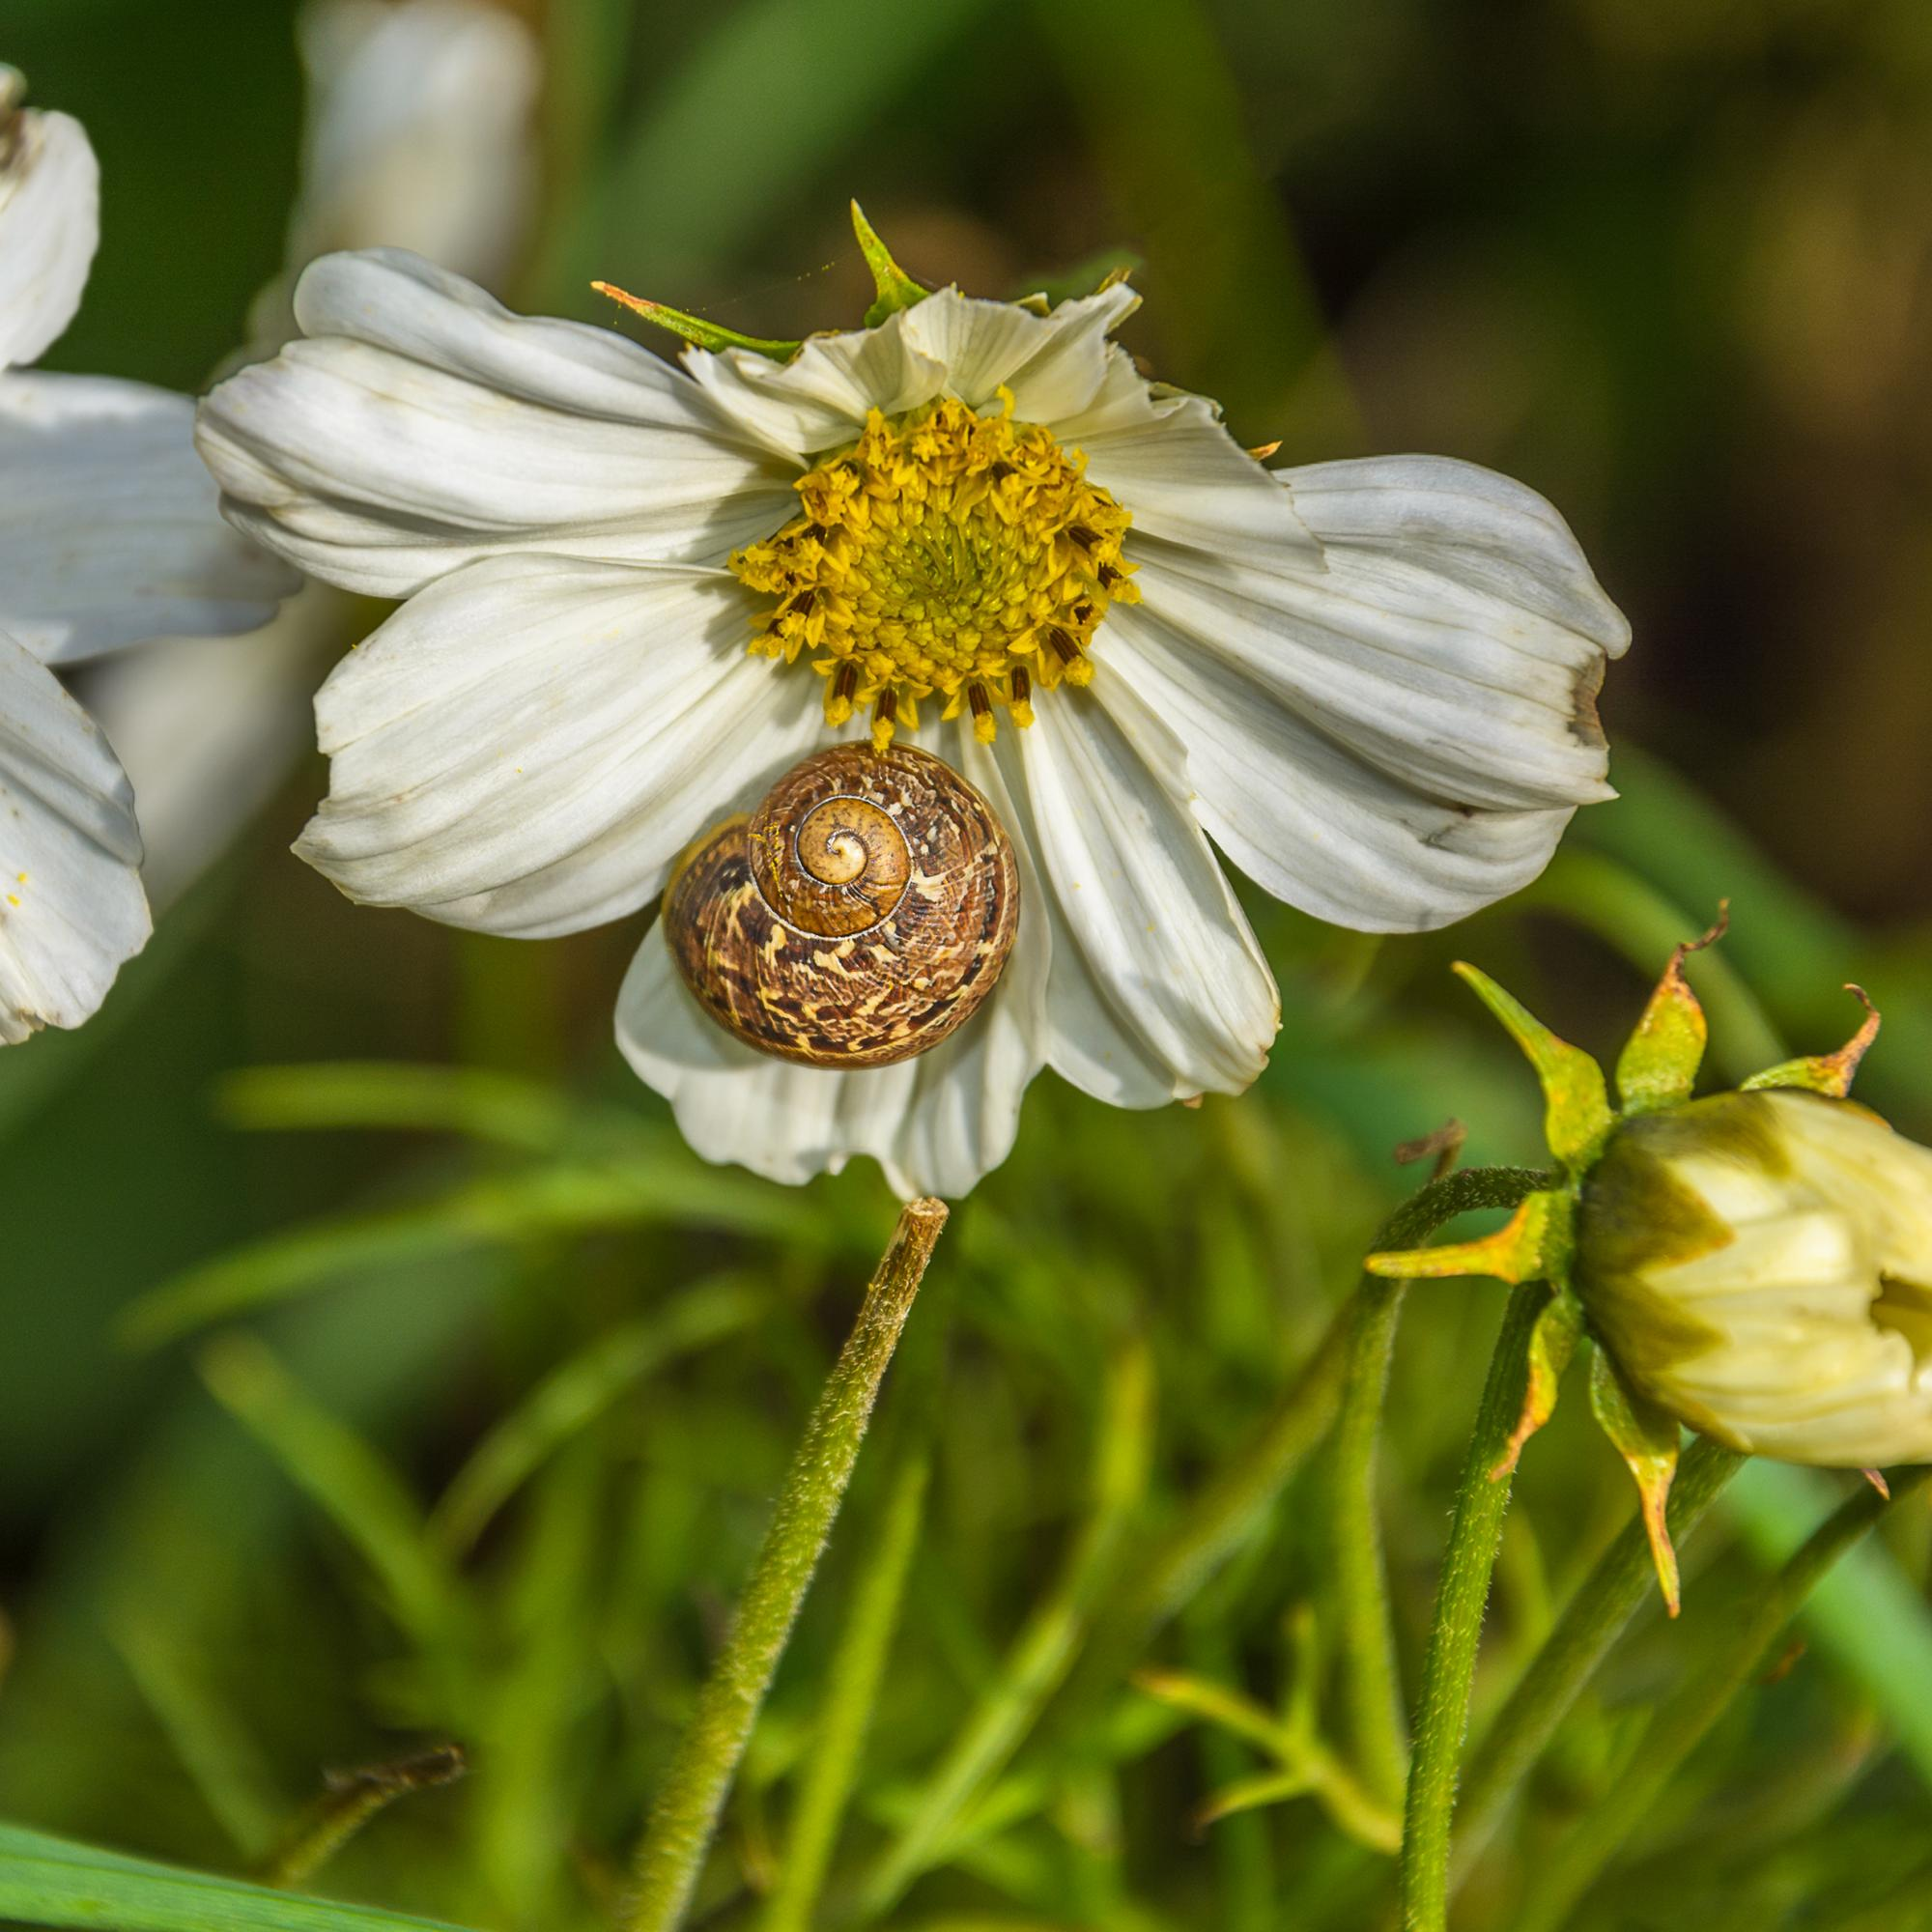 Snail on flower